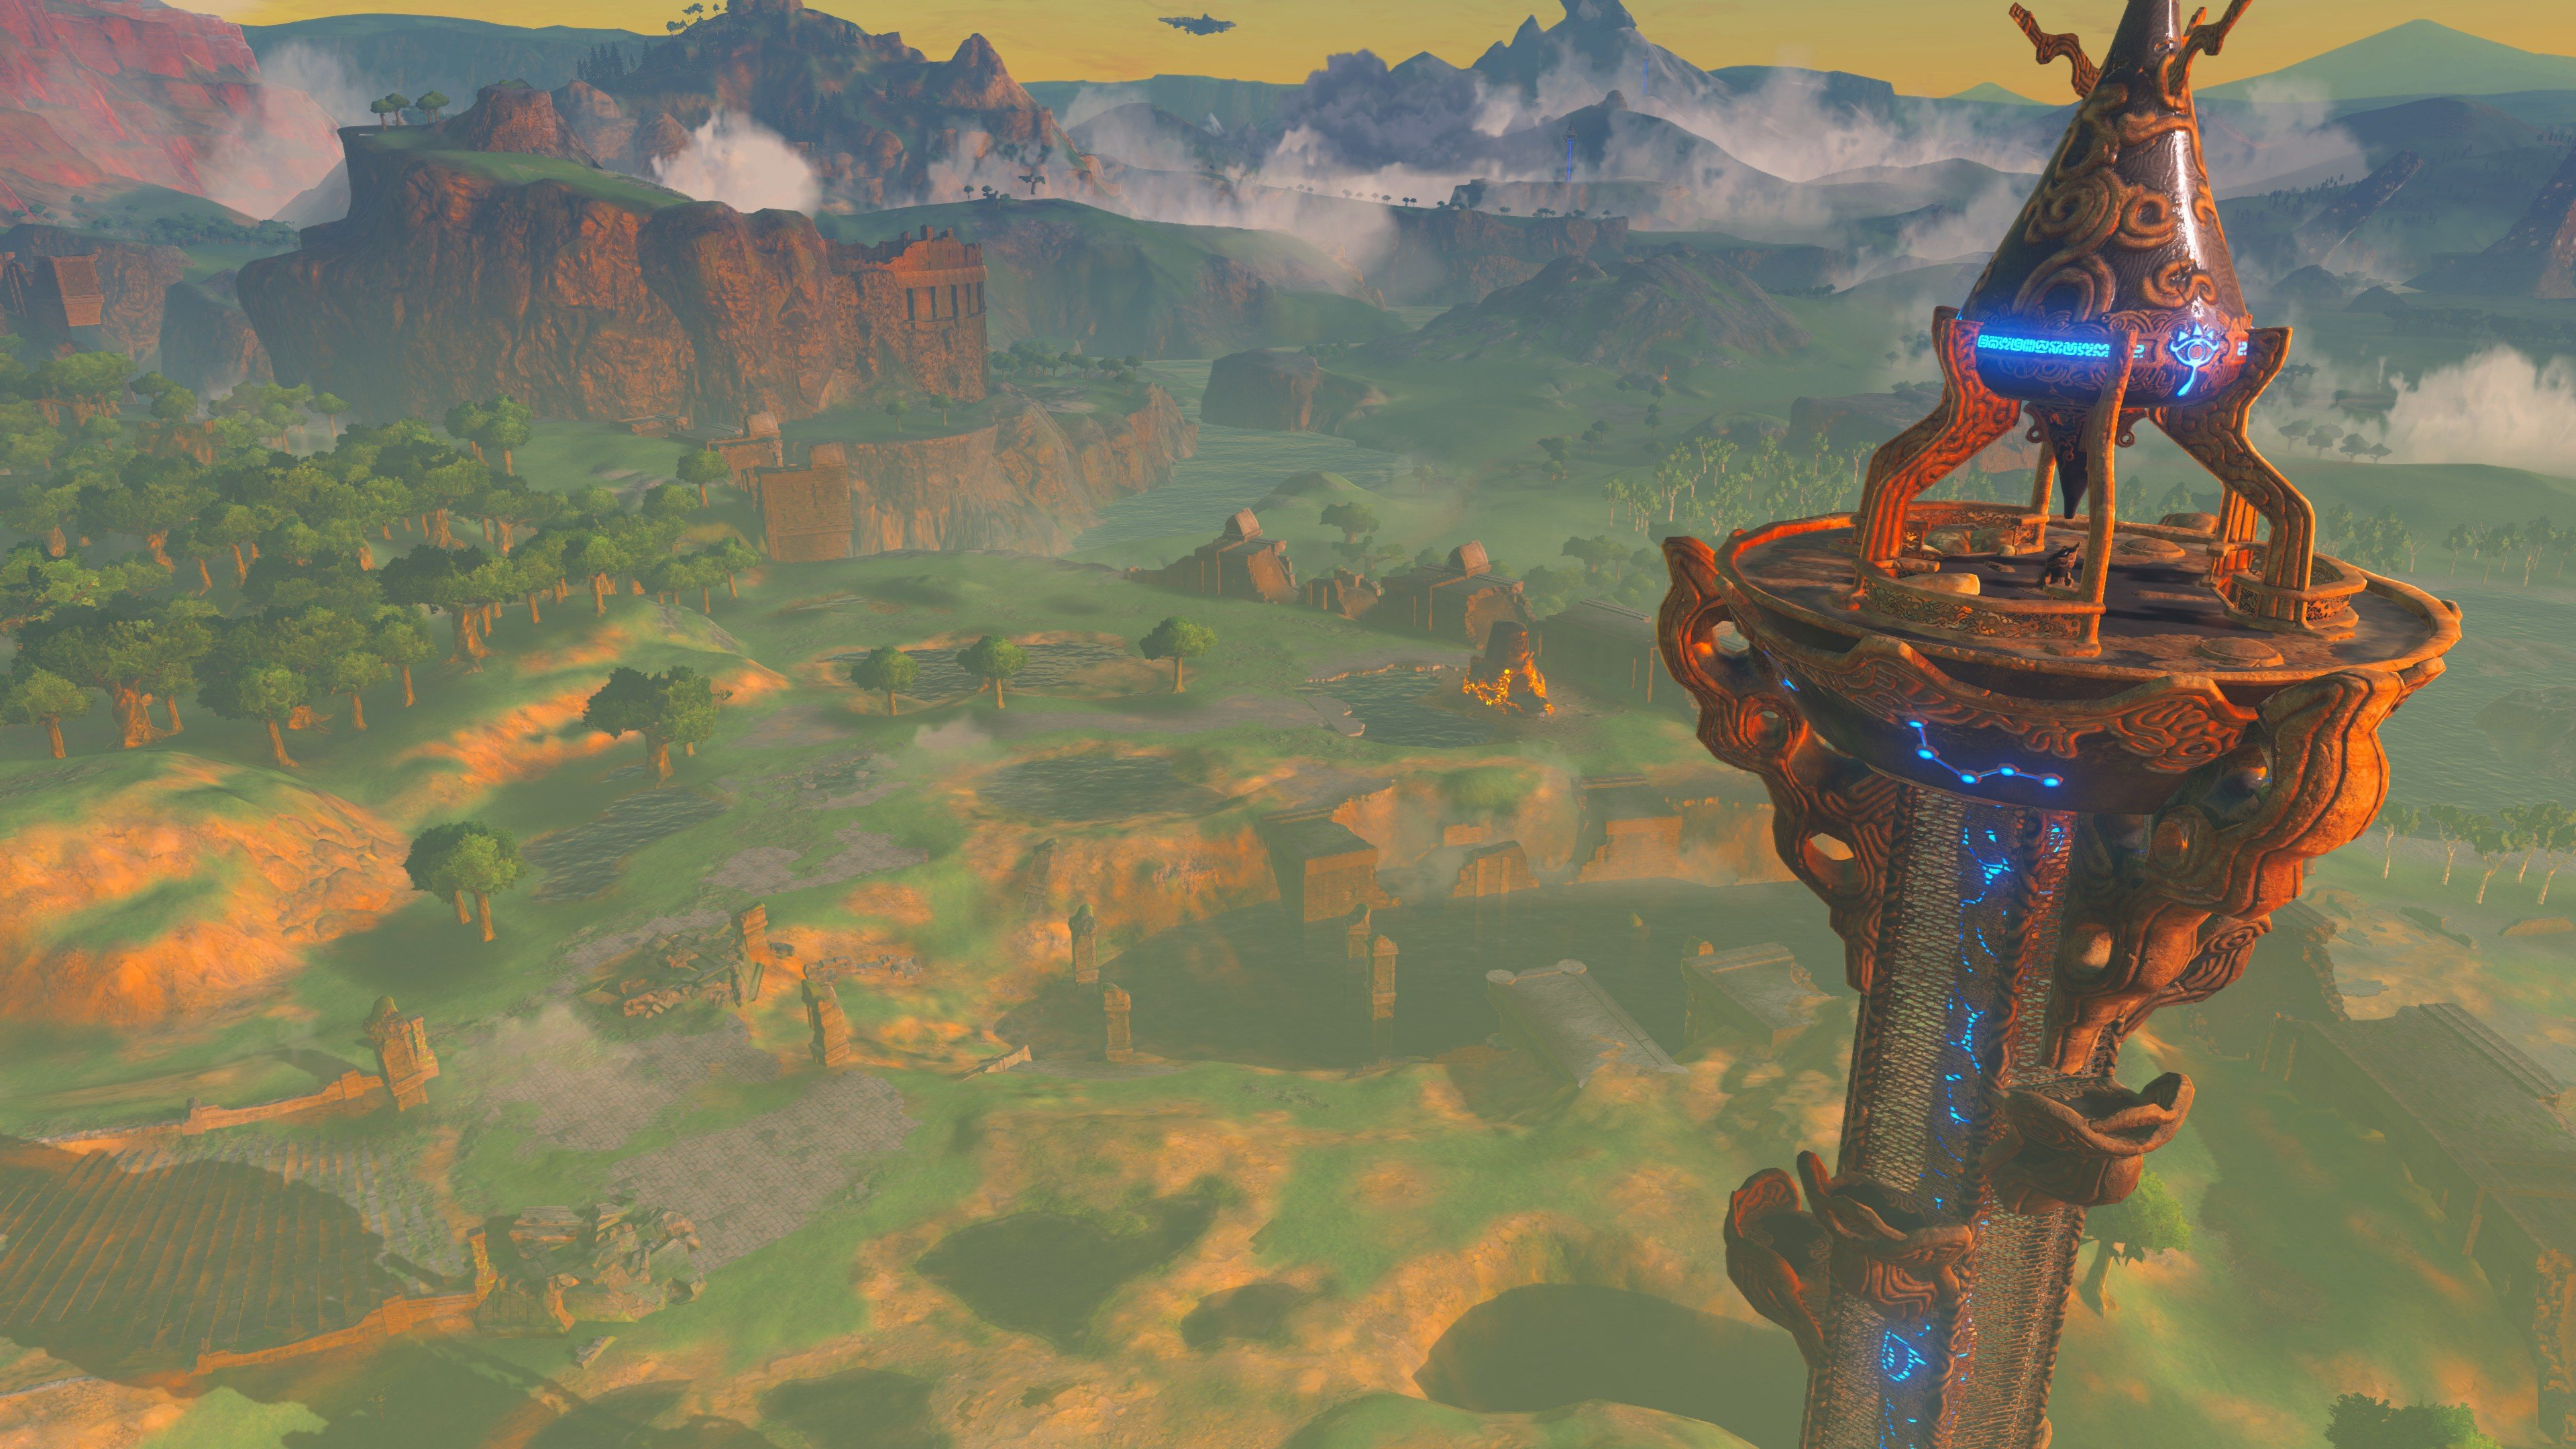 Eiji Aonuma Aims to Keep Surprising Fans with The Legend of